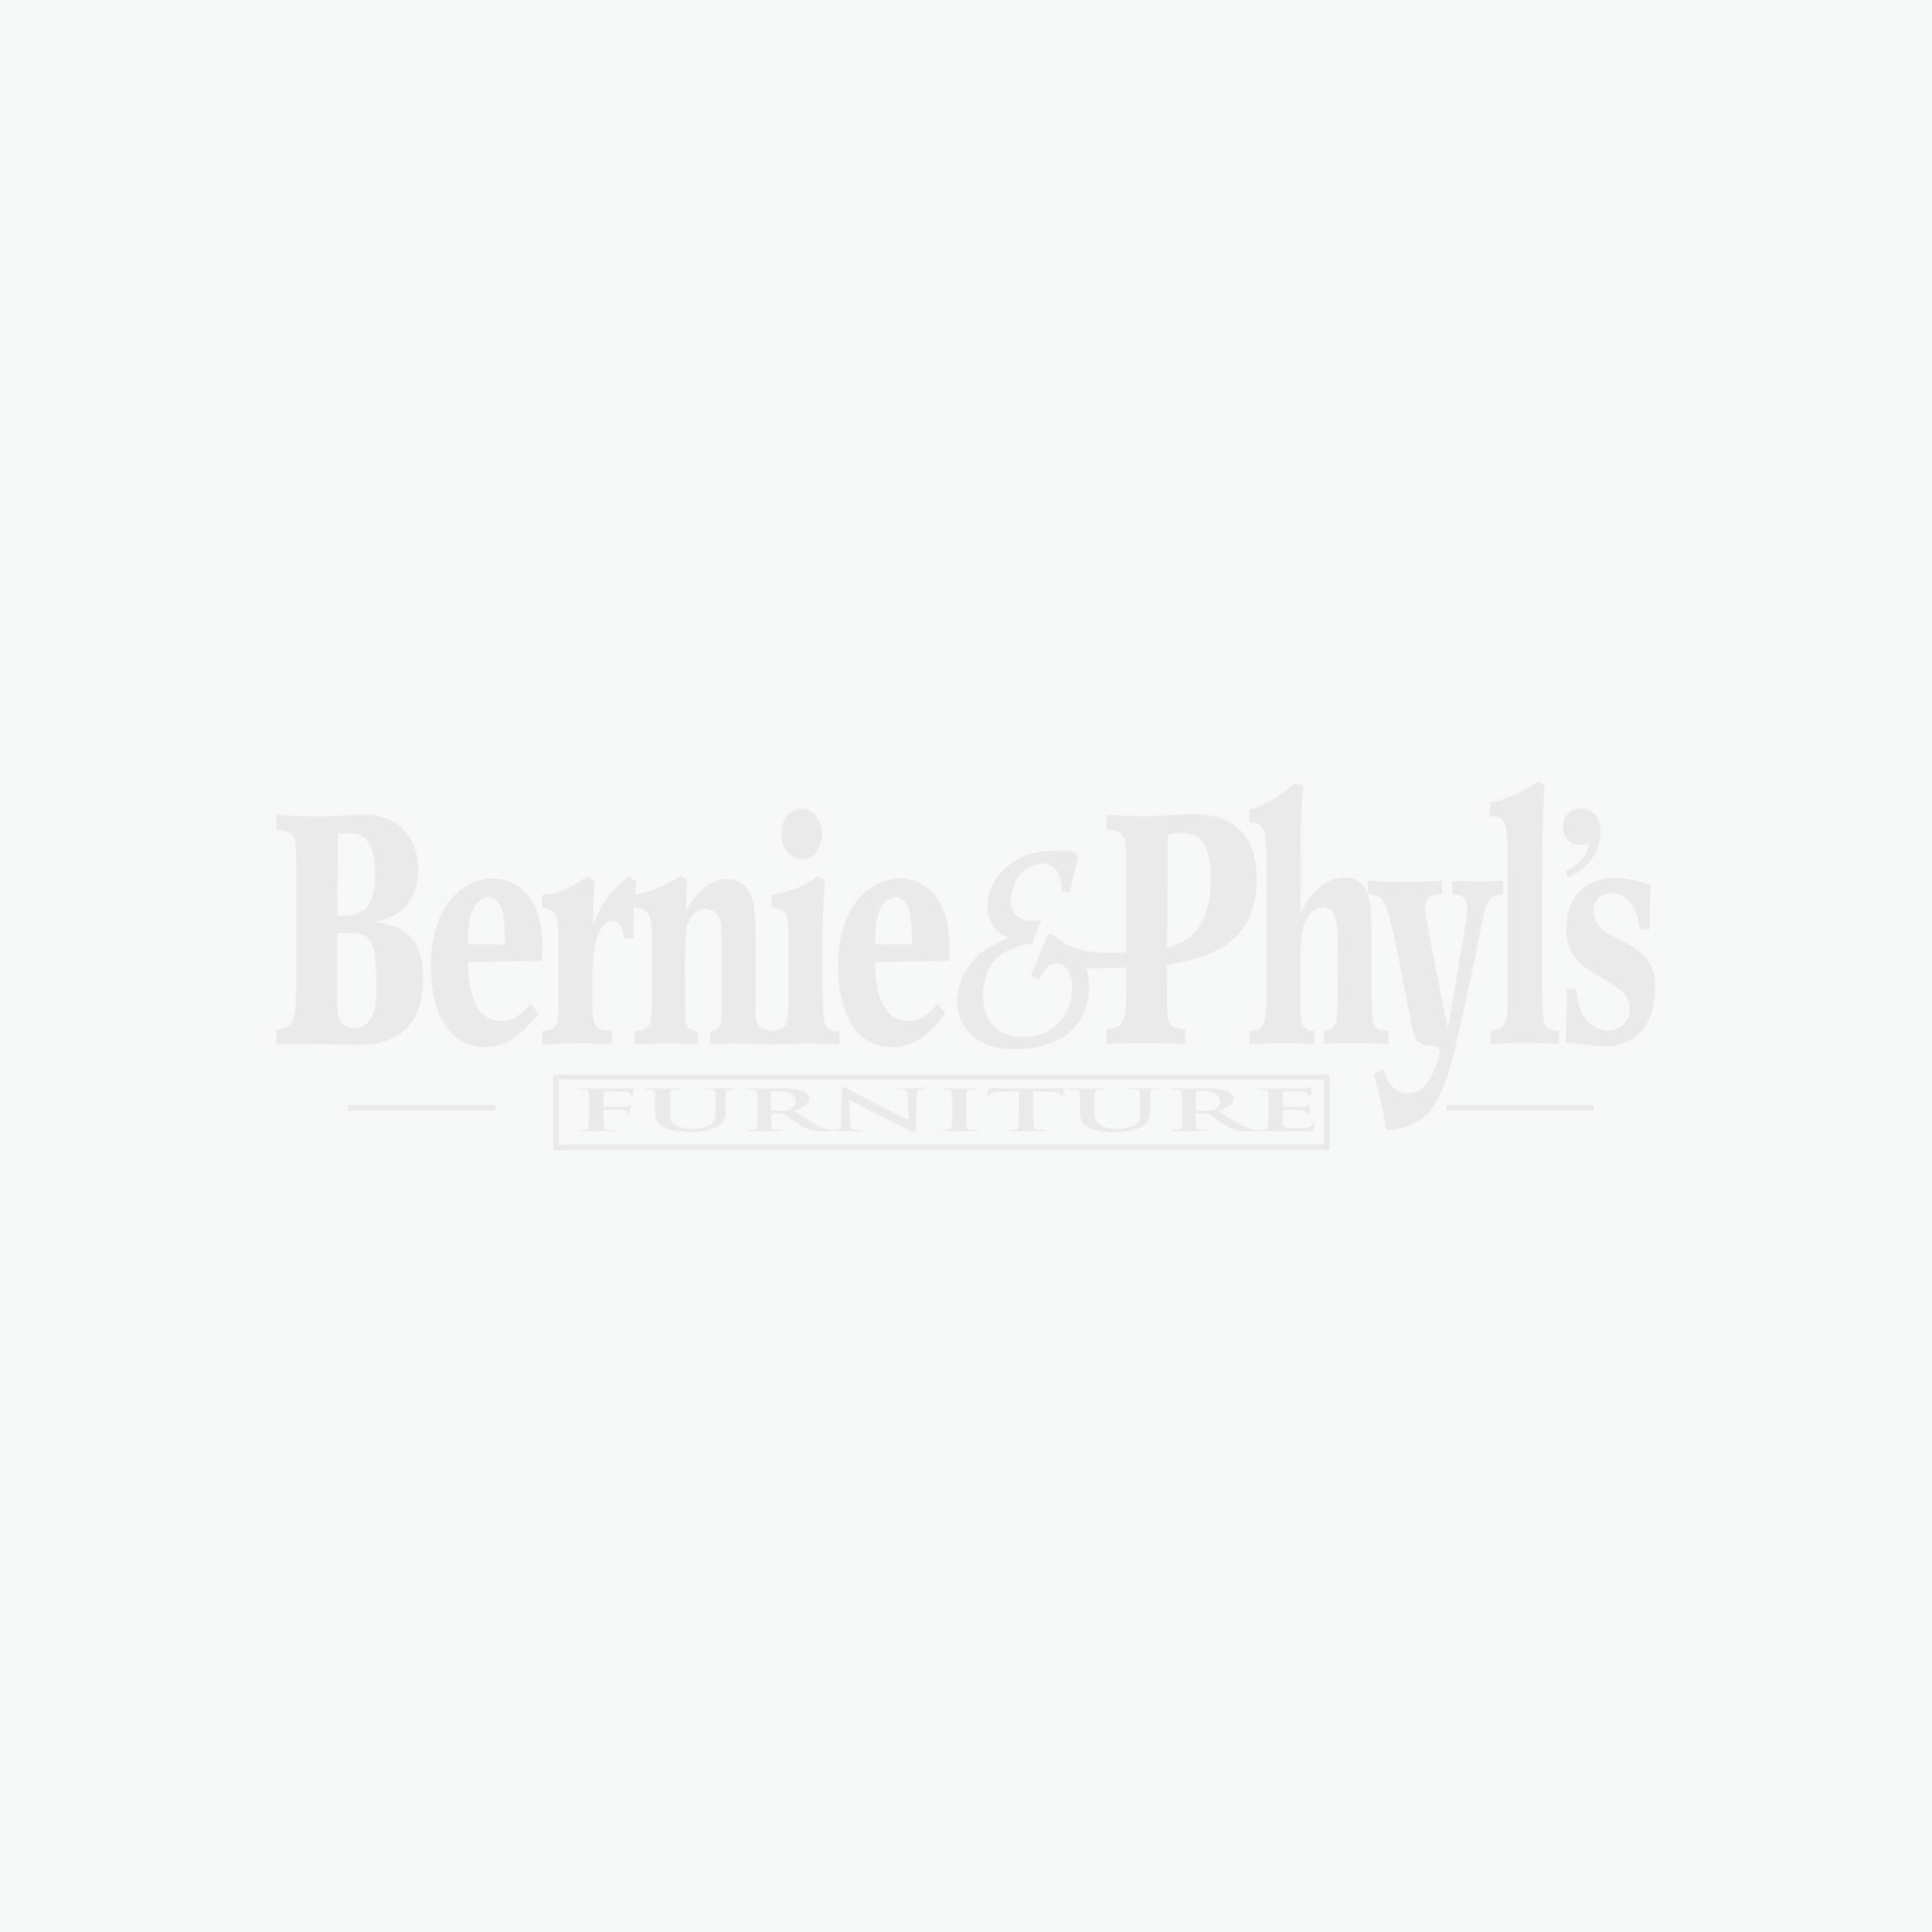 Jenny Sofa Bernie Amp Phyl S Furniture By Klaussner